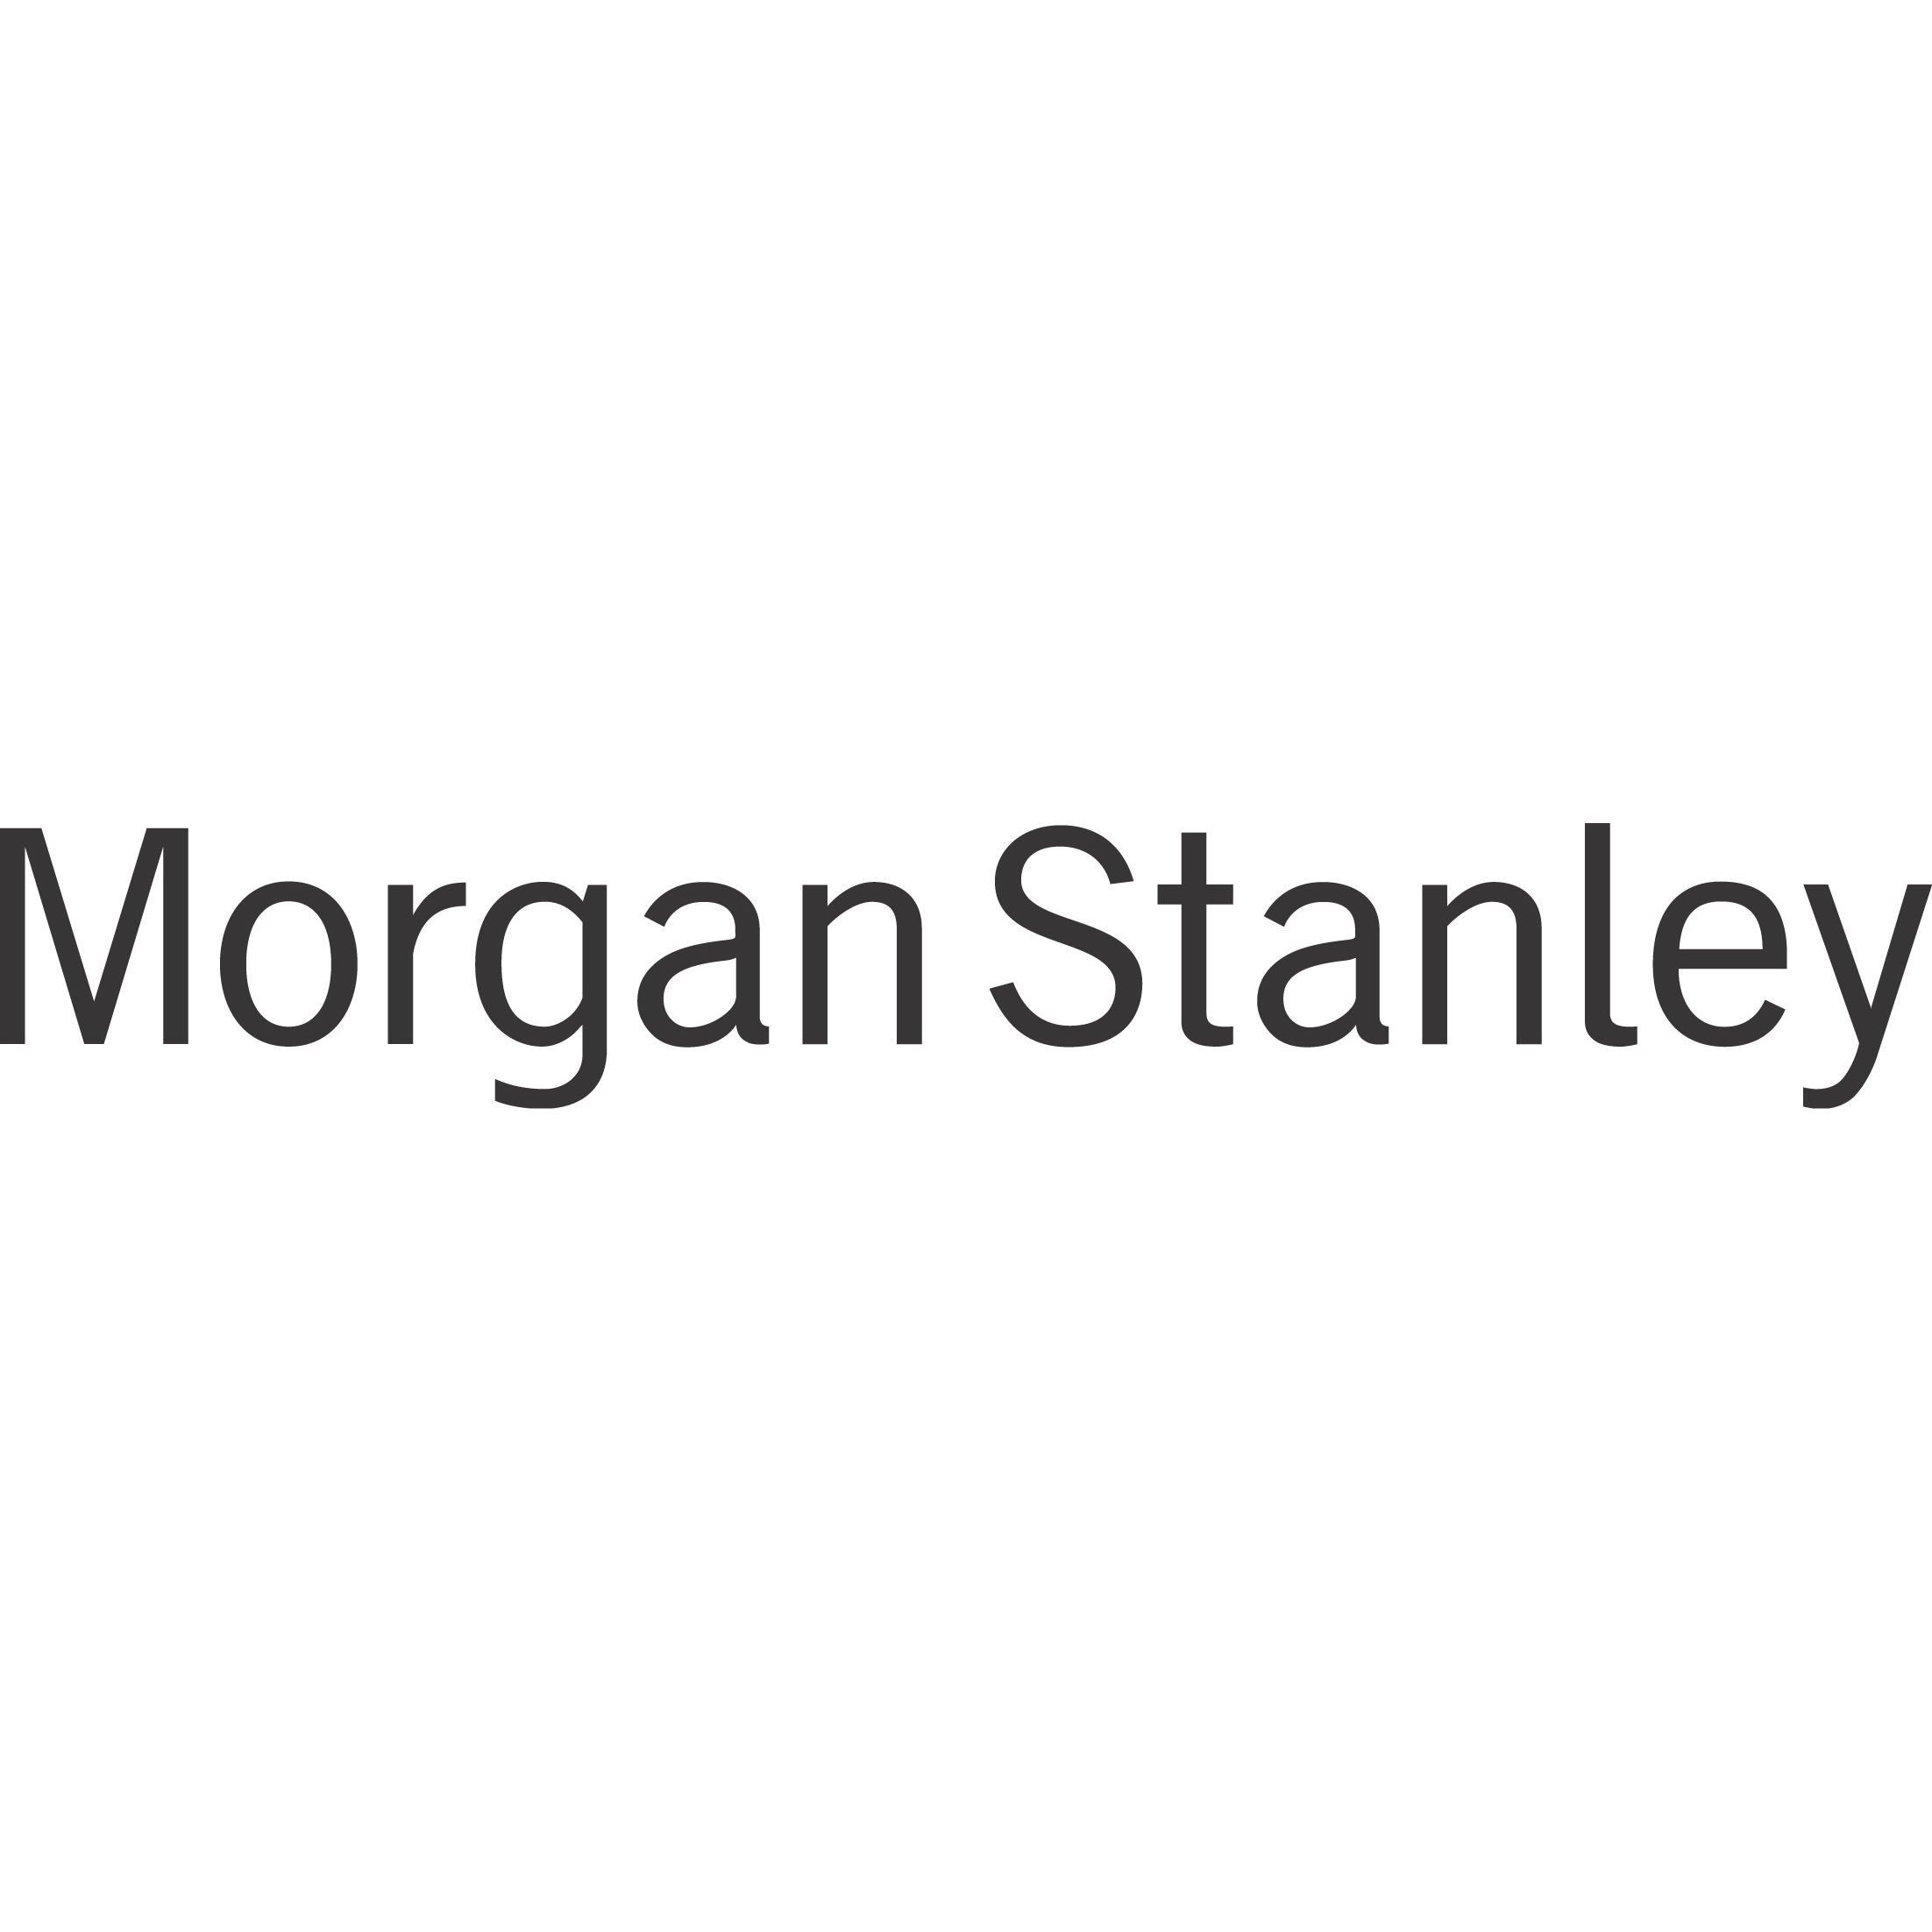 Jeffrey J Berns - Morgan Stanley